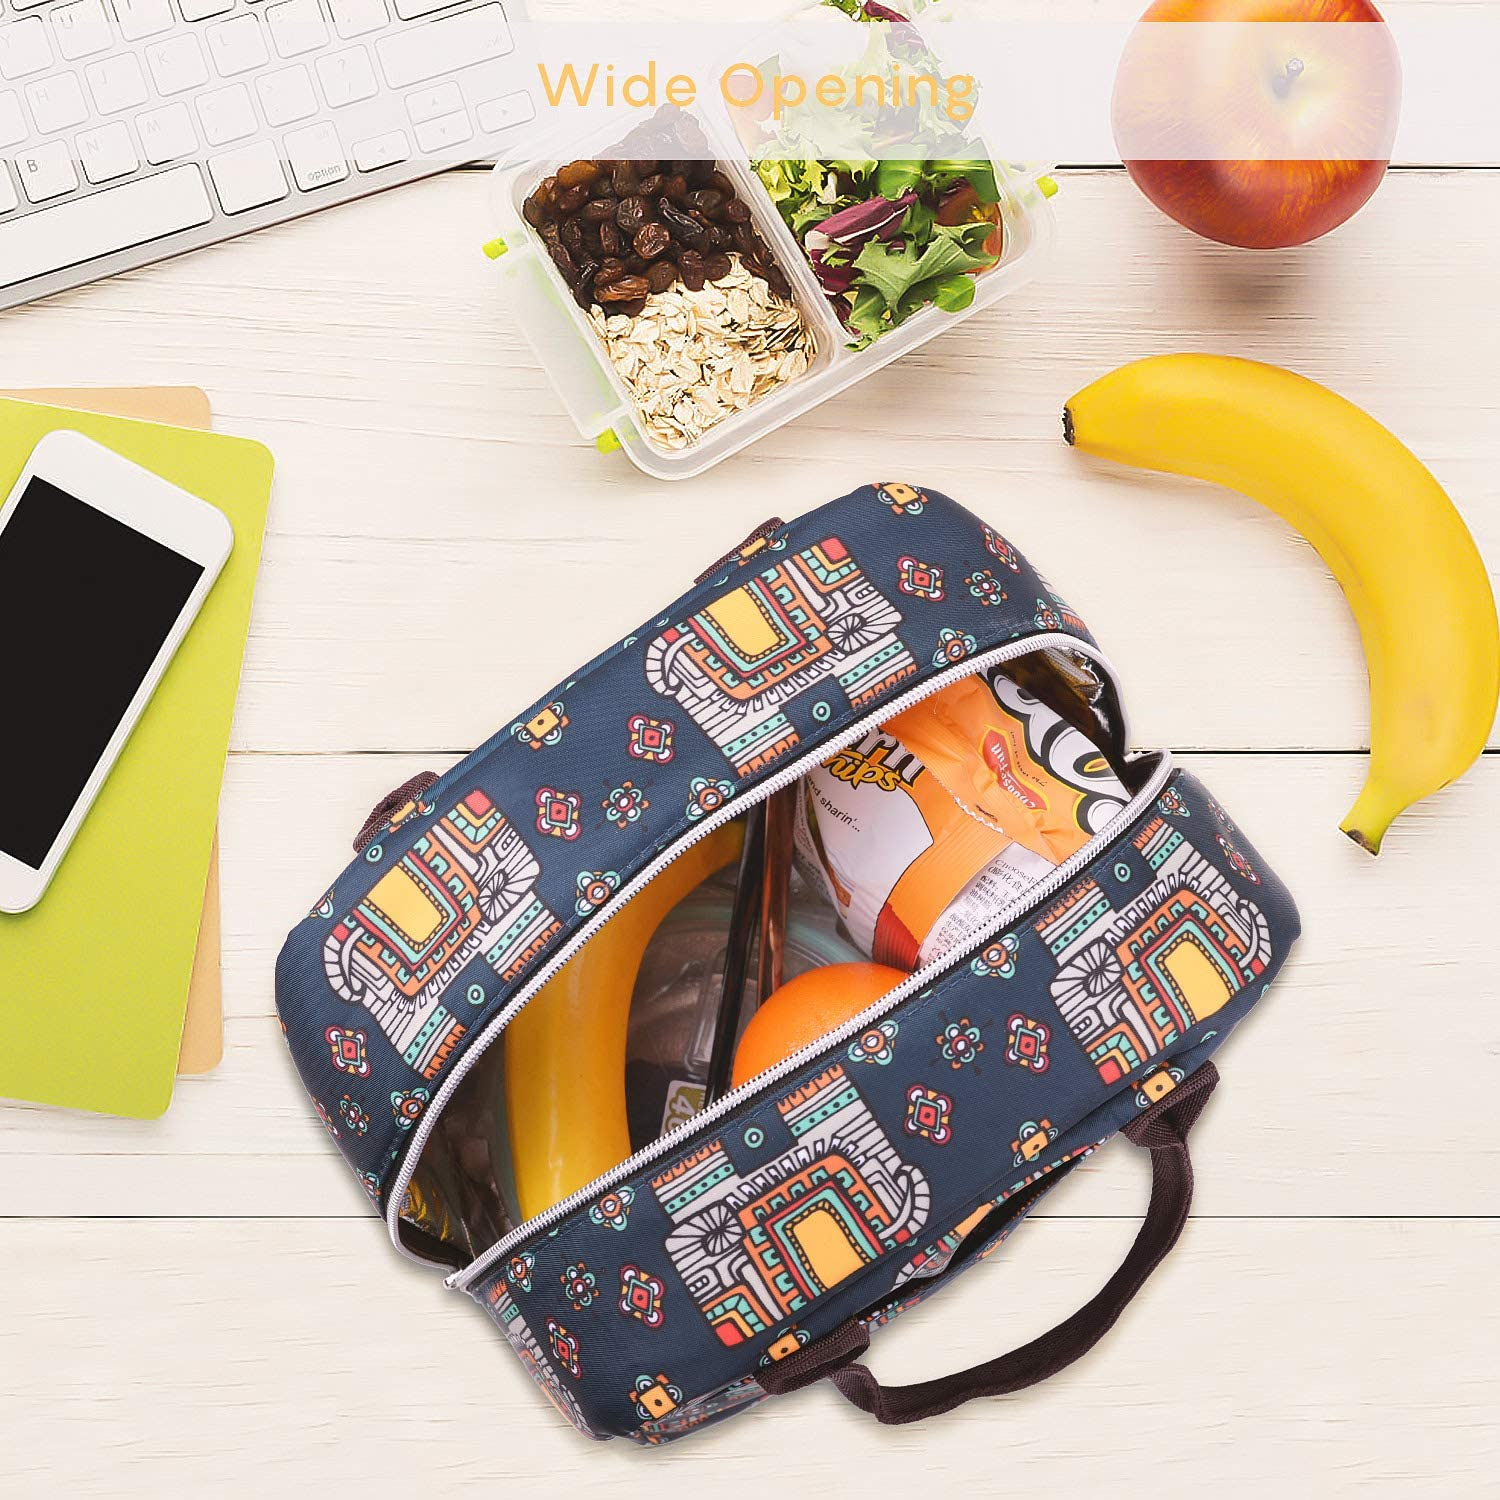 Light Blue Stripe Lunch Box for Women Girls Double Layer Leakproof Lunch Bags for Work School Travel Outdoor